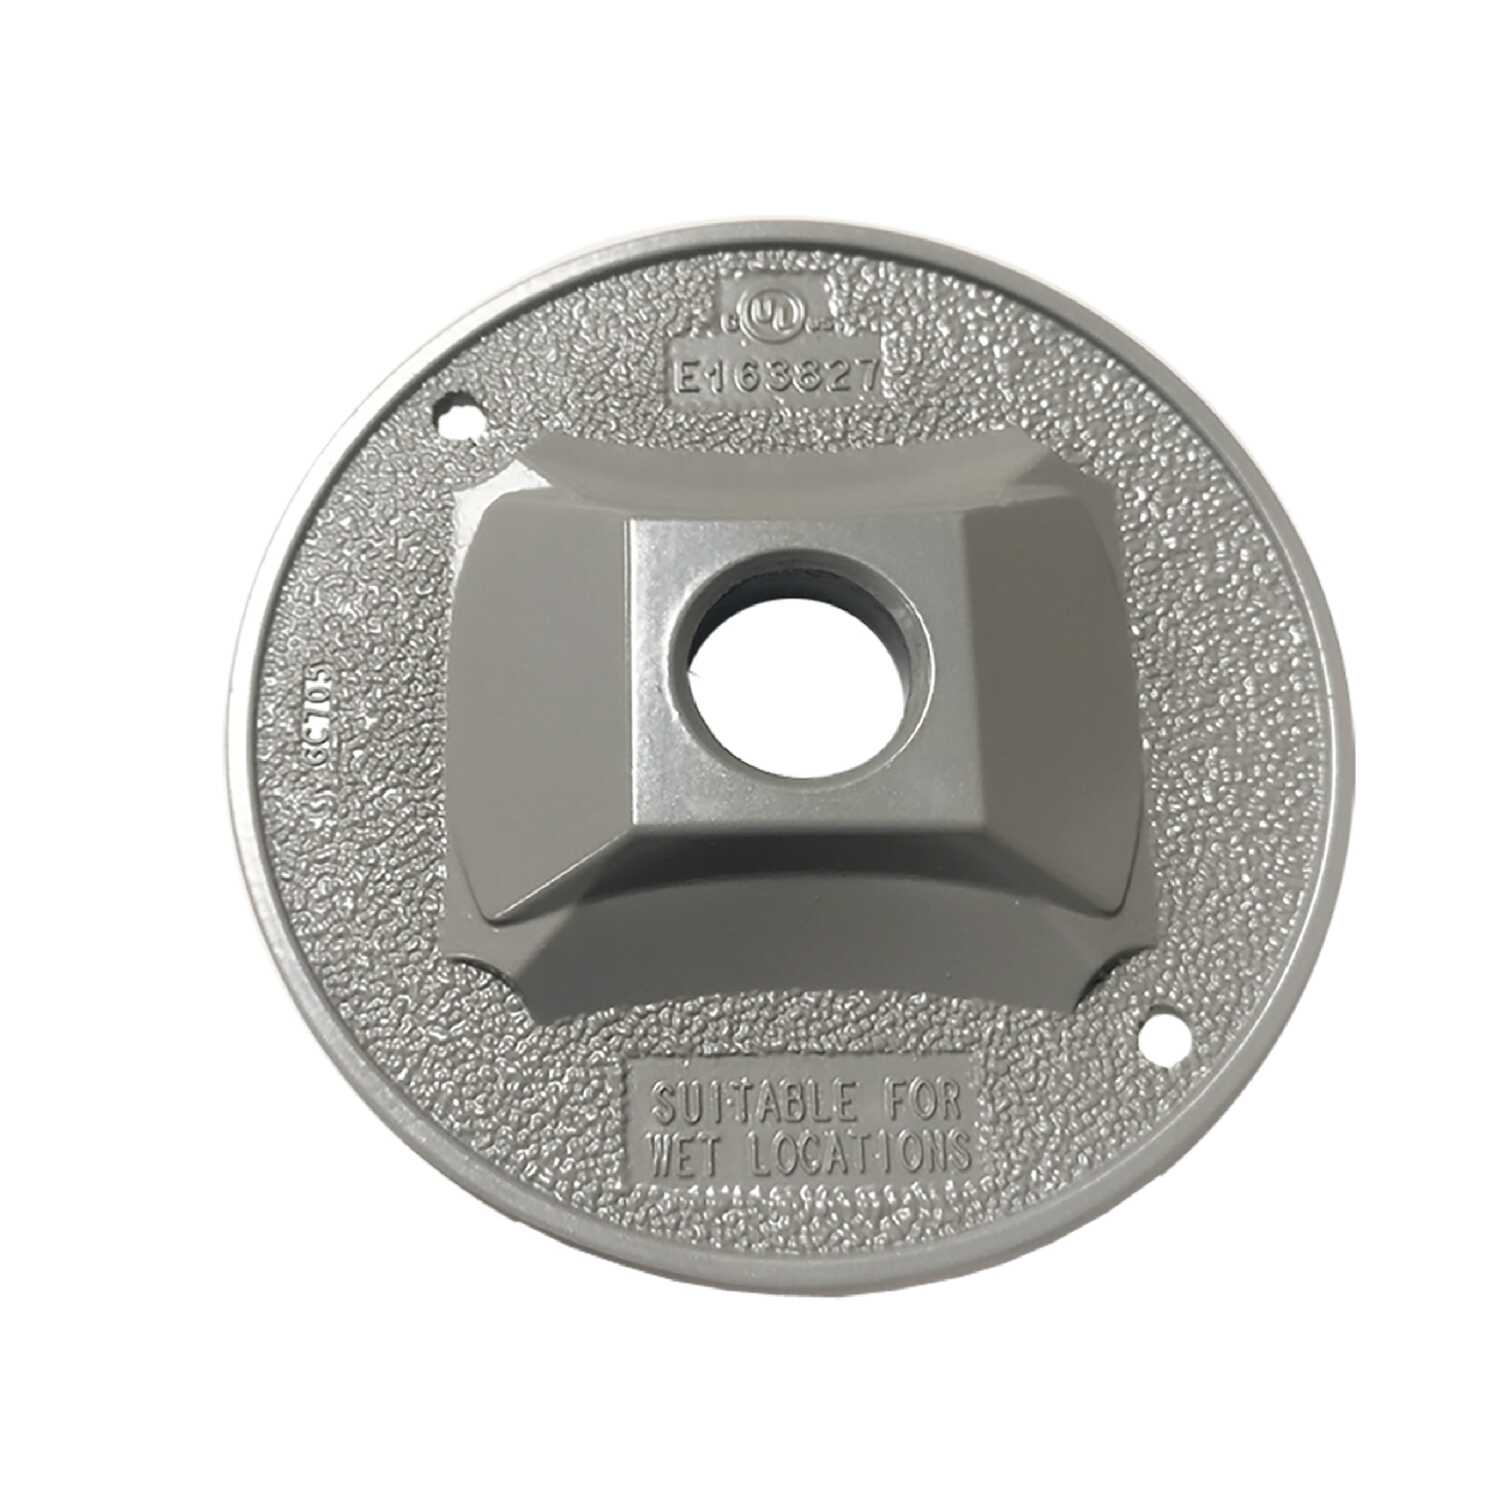 Sigma Electric  Round  Metal  Lampholder Cover  For Wet Locations